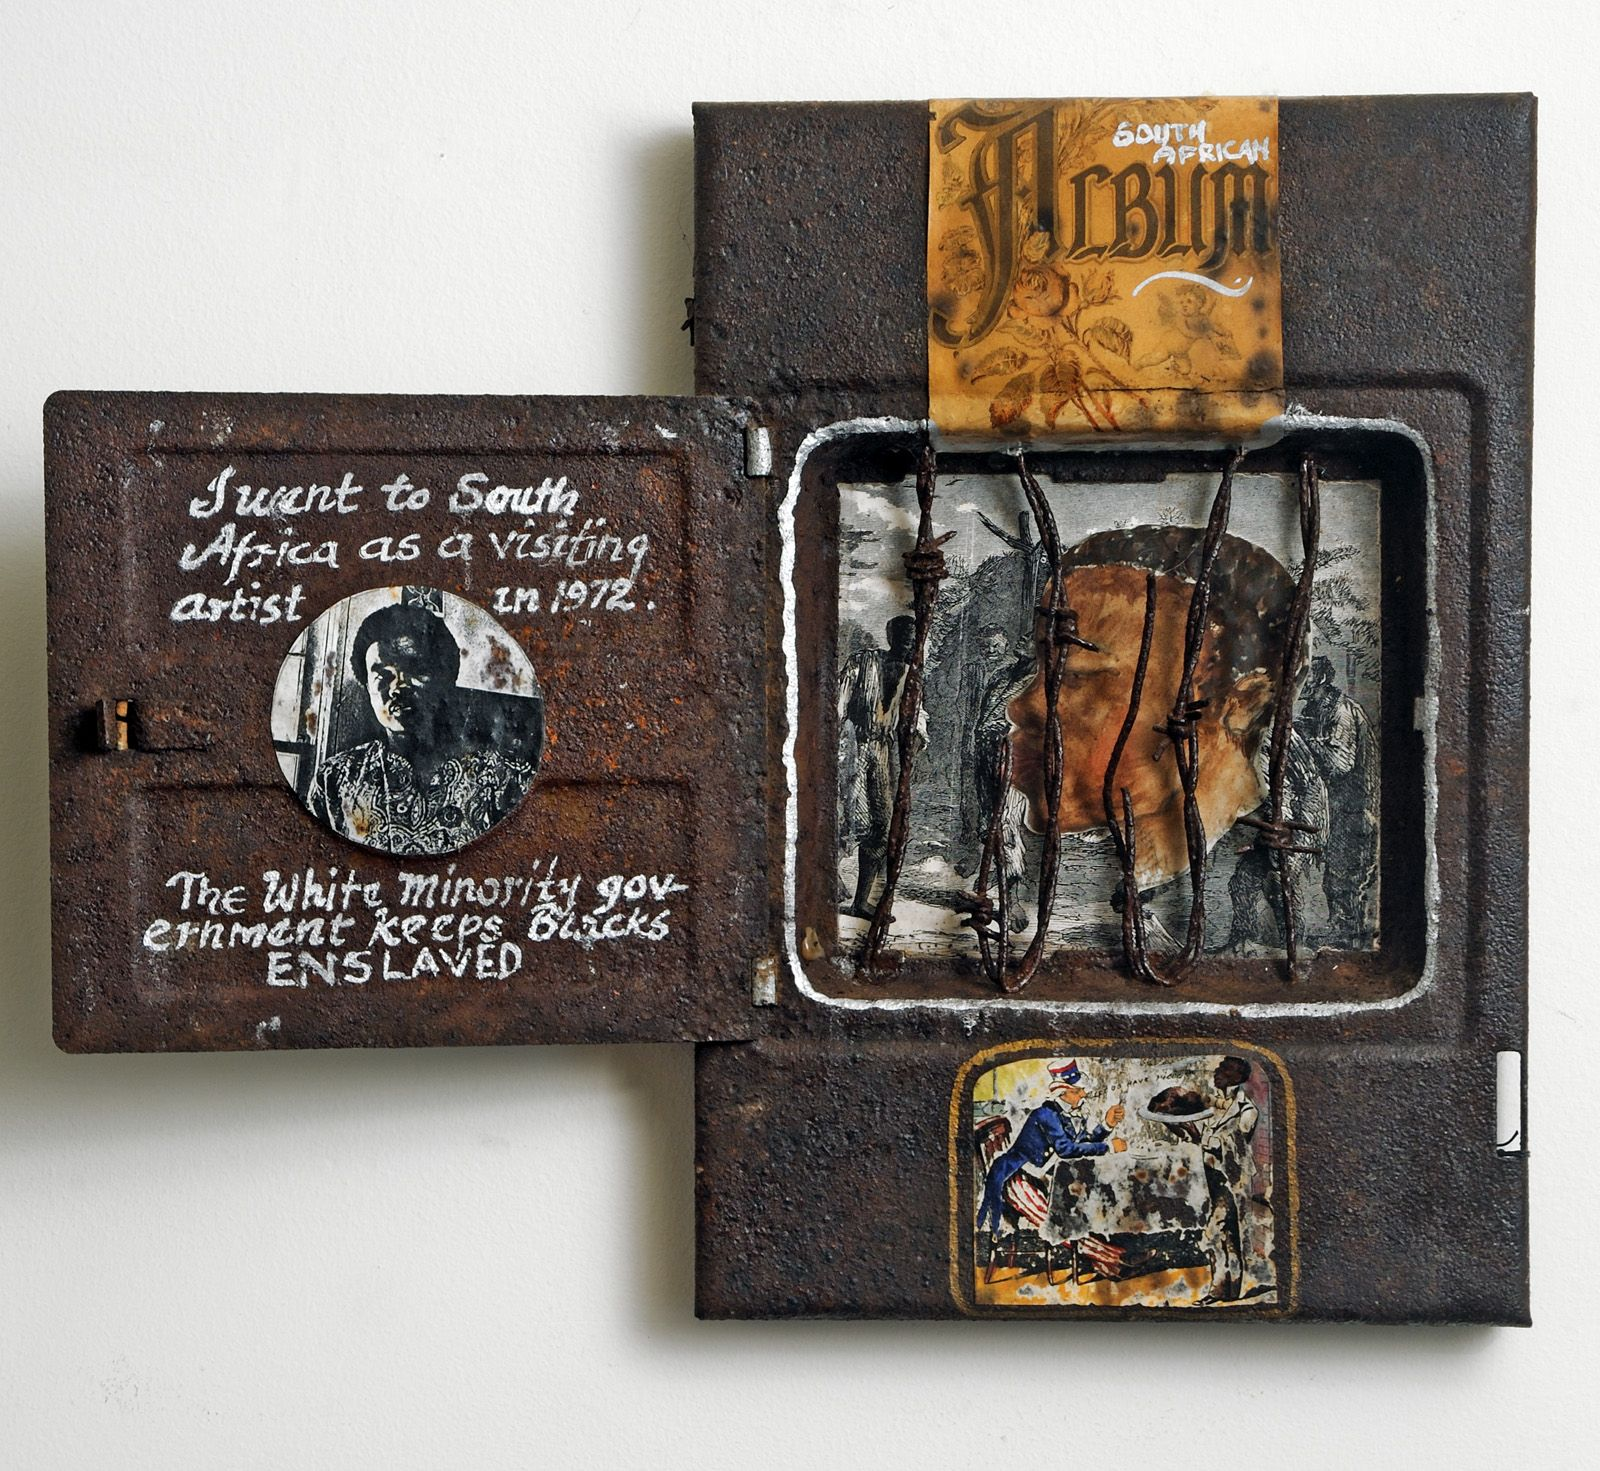 David Driskell, My South African Album, c. 1987, mixed media sculpture, 13 x 19 x 3 /4 inches